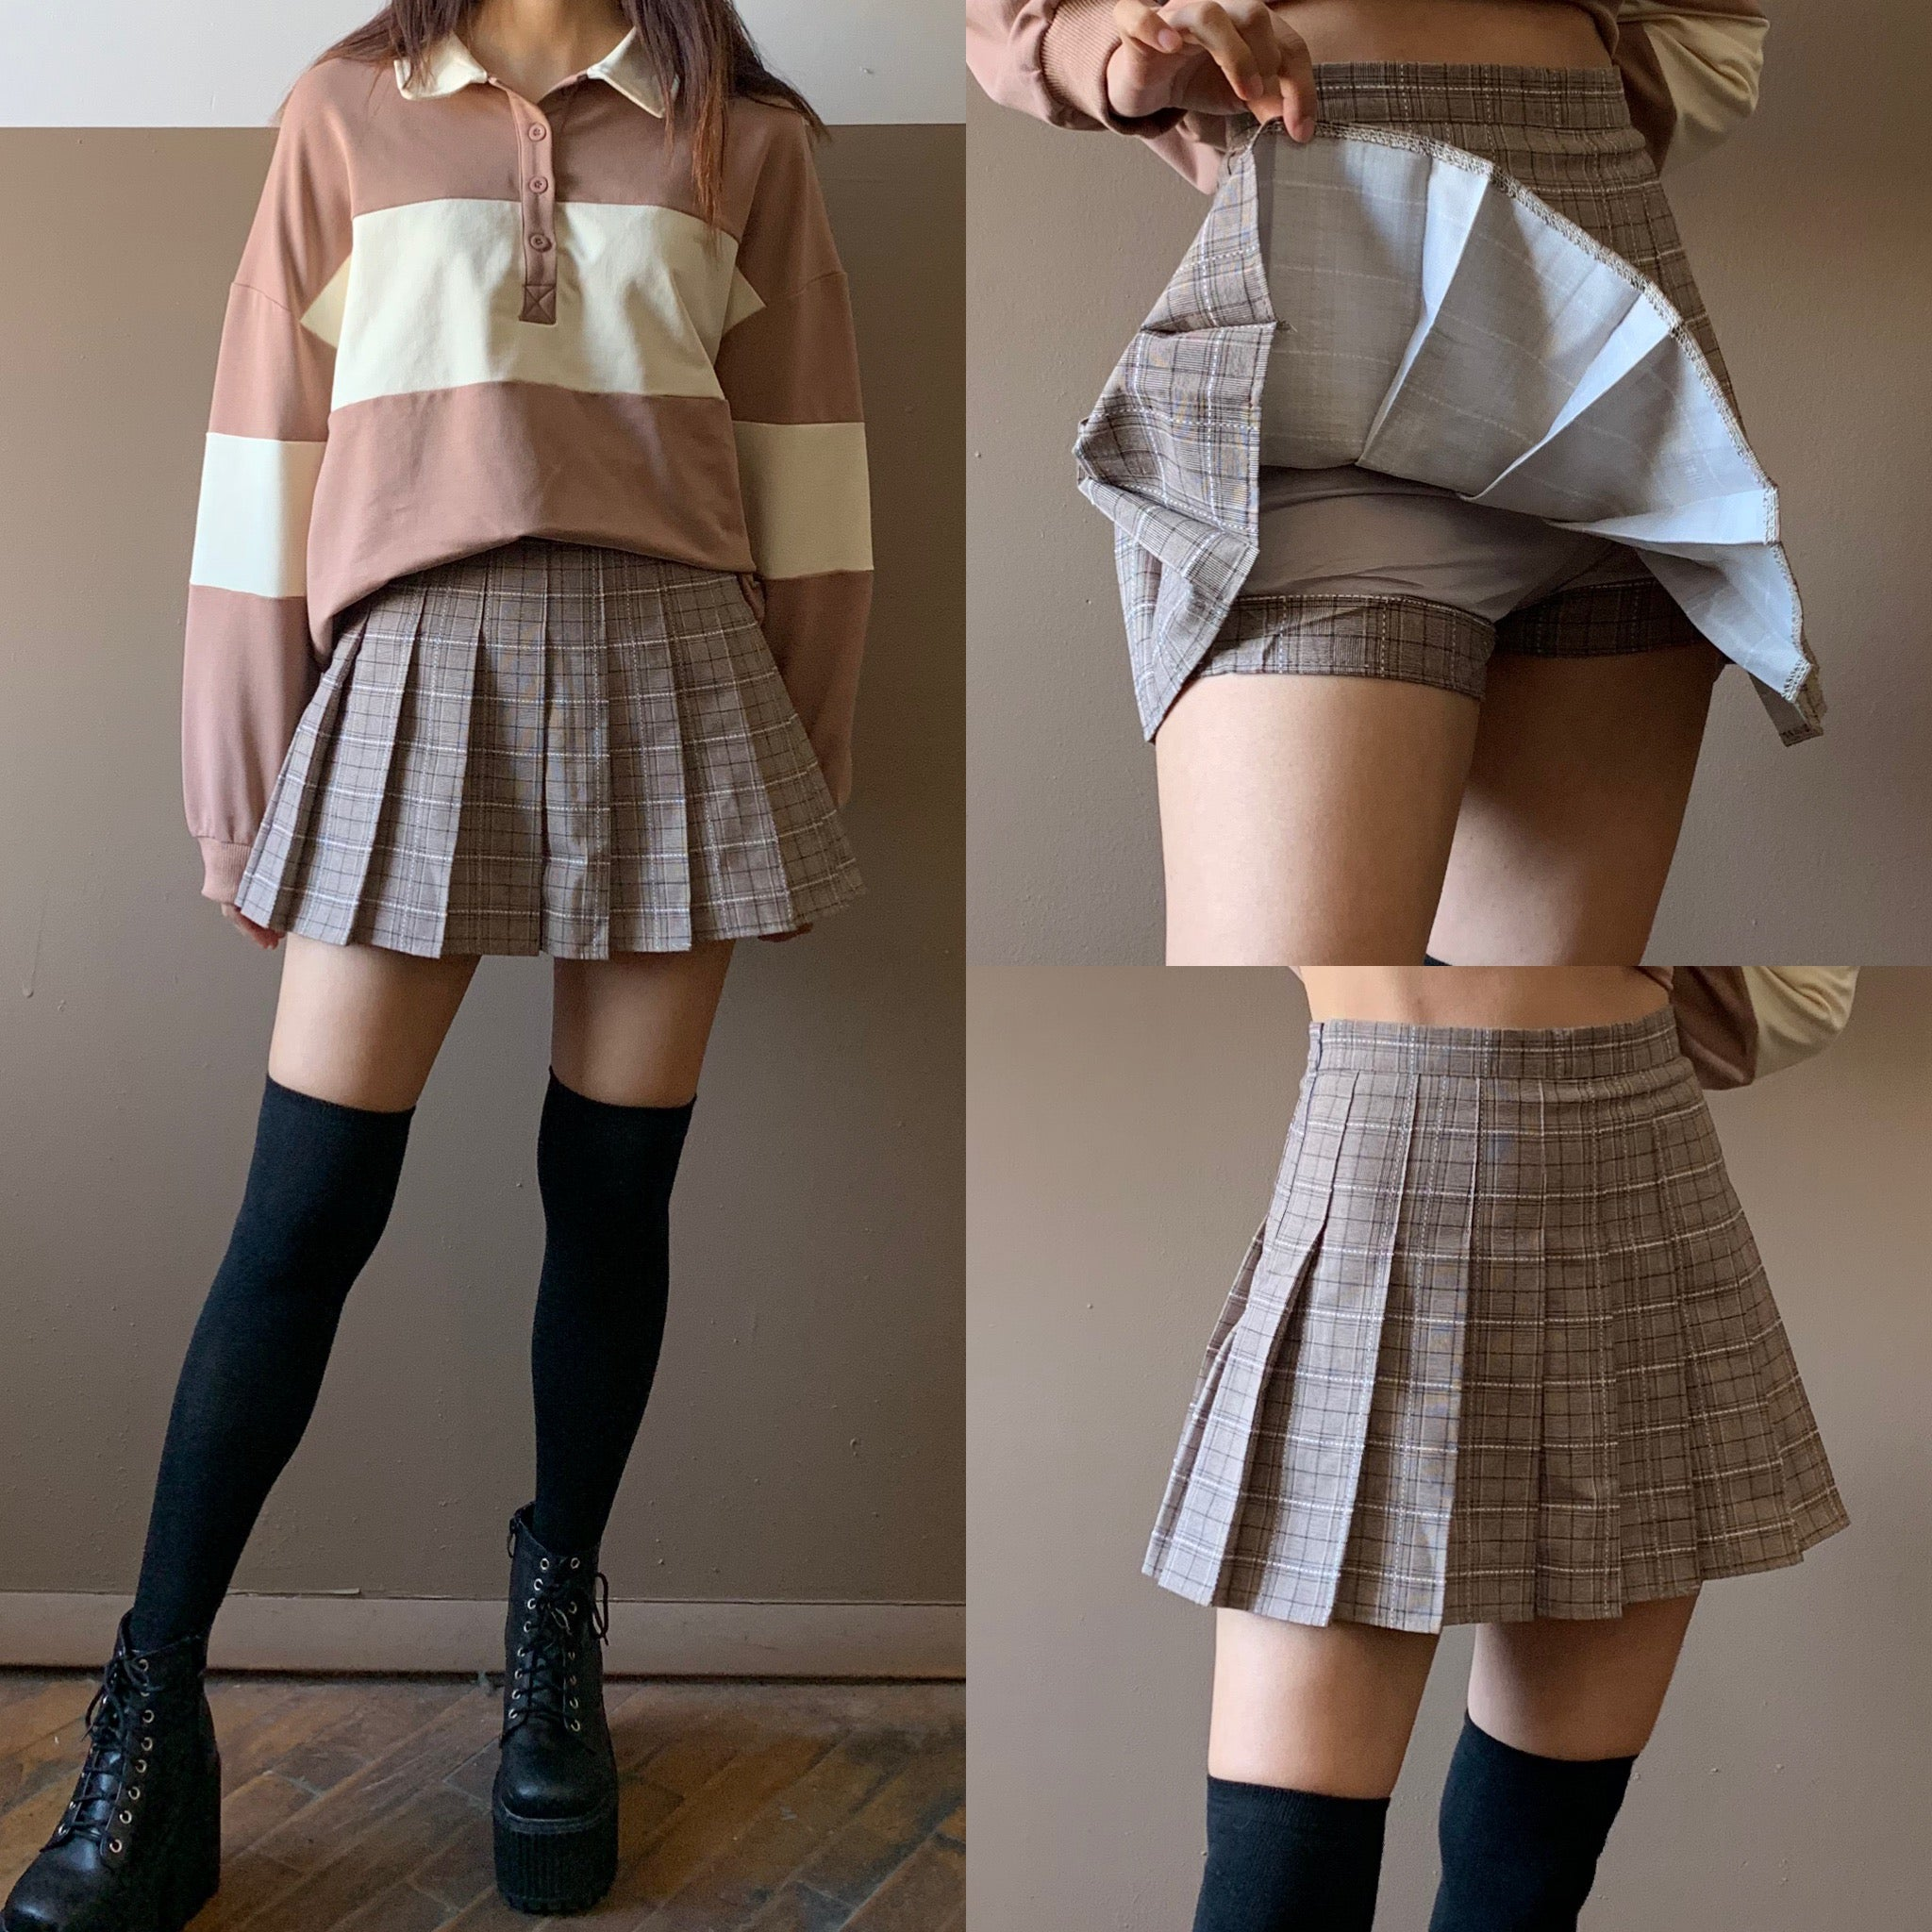 E Girl Fashion: EARTHY AESTHETIC PREPPY KAWAII